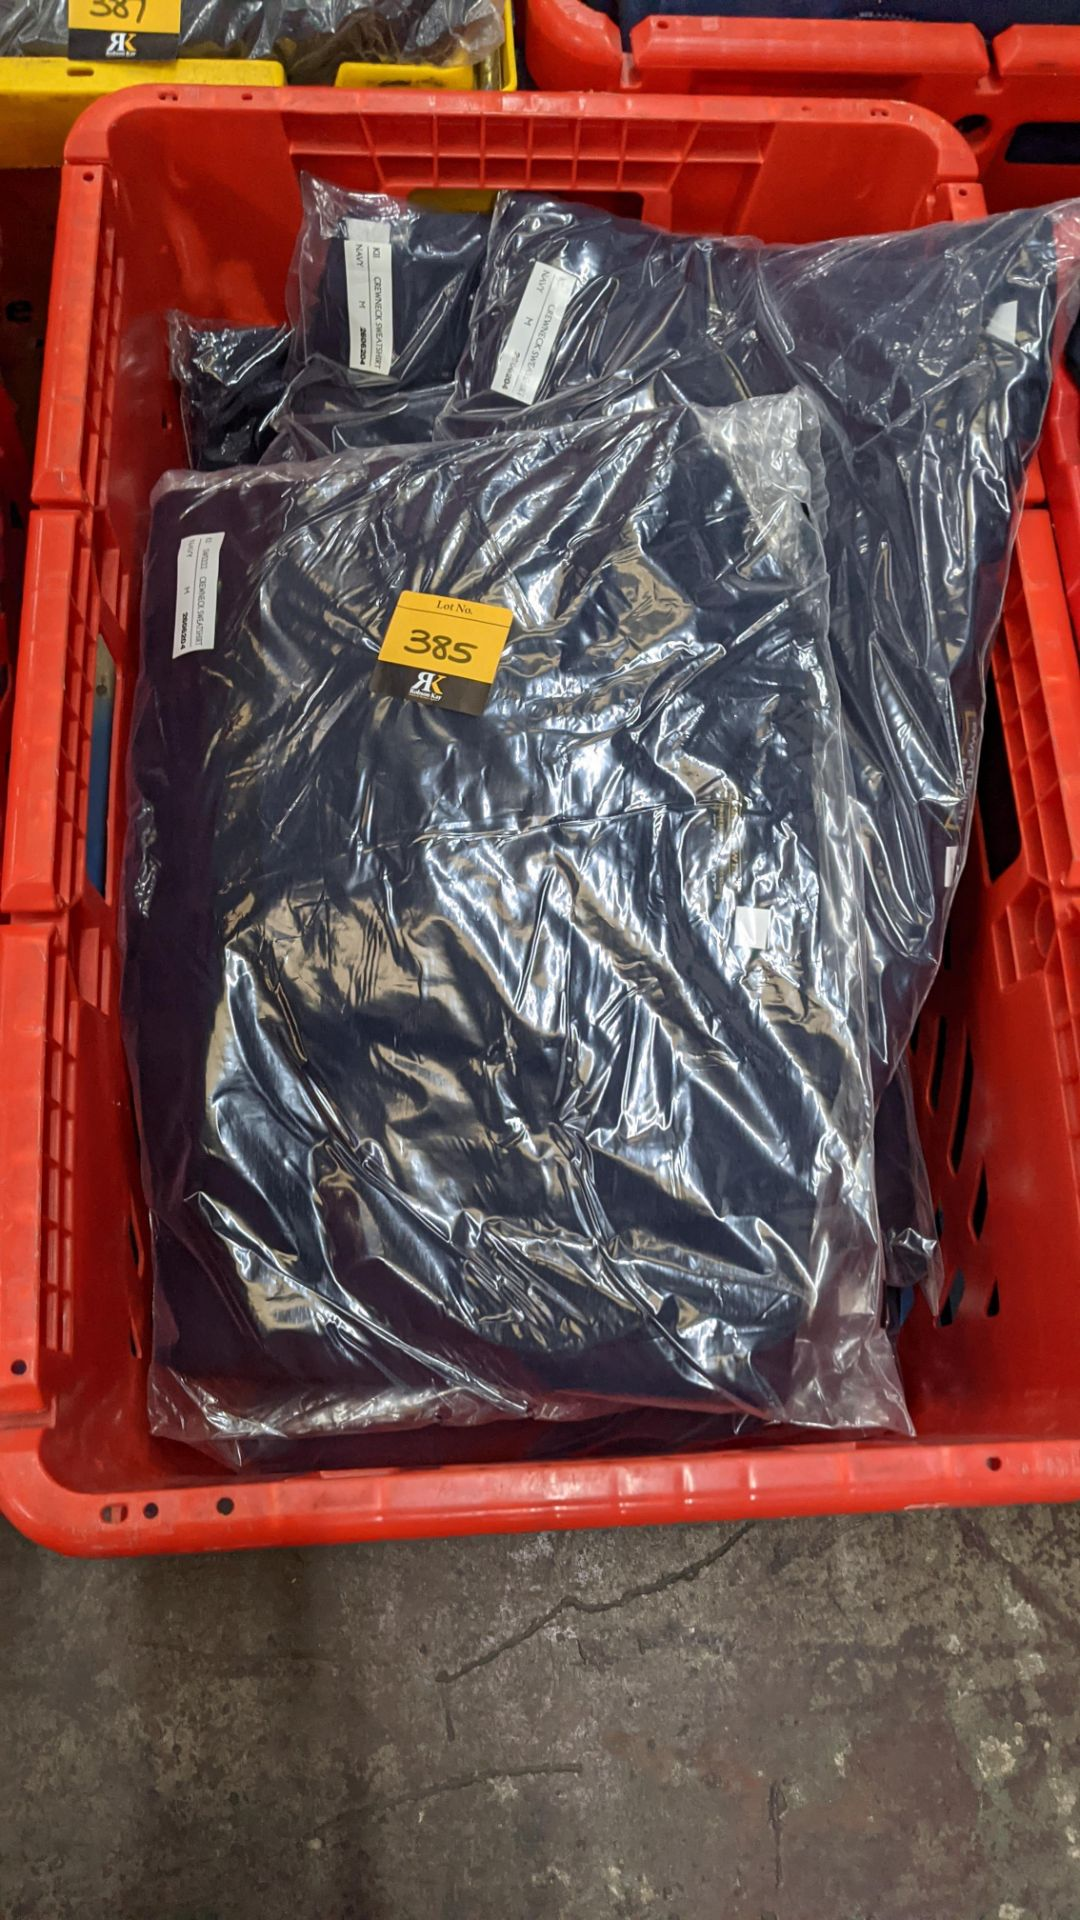 Approx 12 off navy sweatshirts - Image 2 of 5